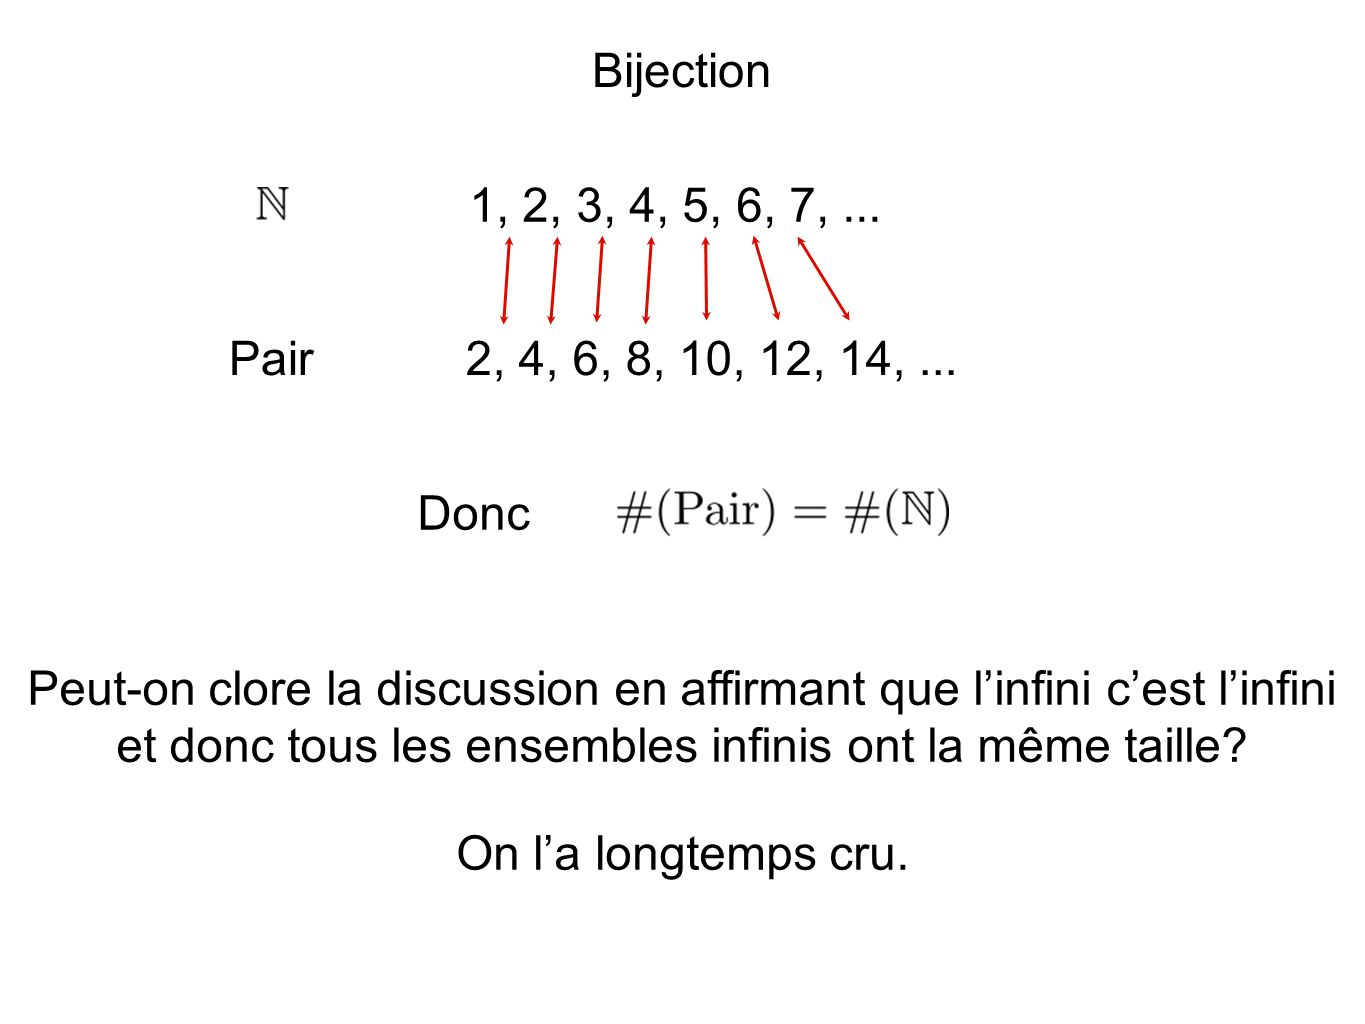 Bijection 1, 2, 3, 4, 5, 6, 7, ... Pair. 2, 4, 6, 8, 10, 12, 14, ... Donc.